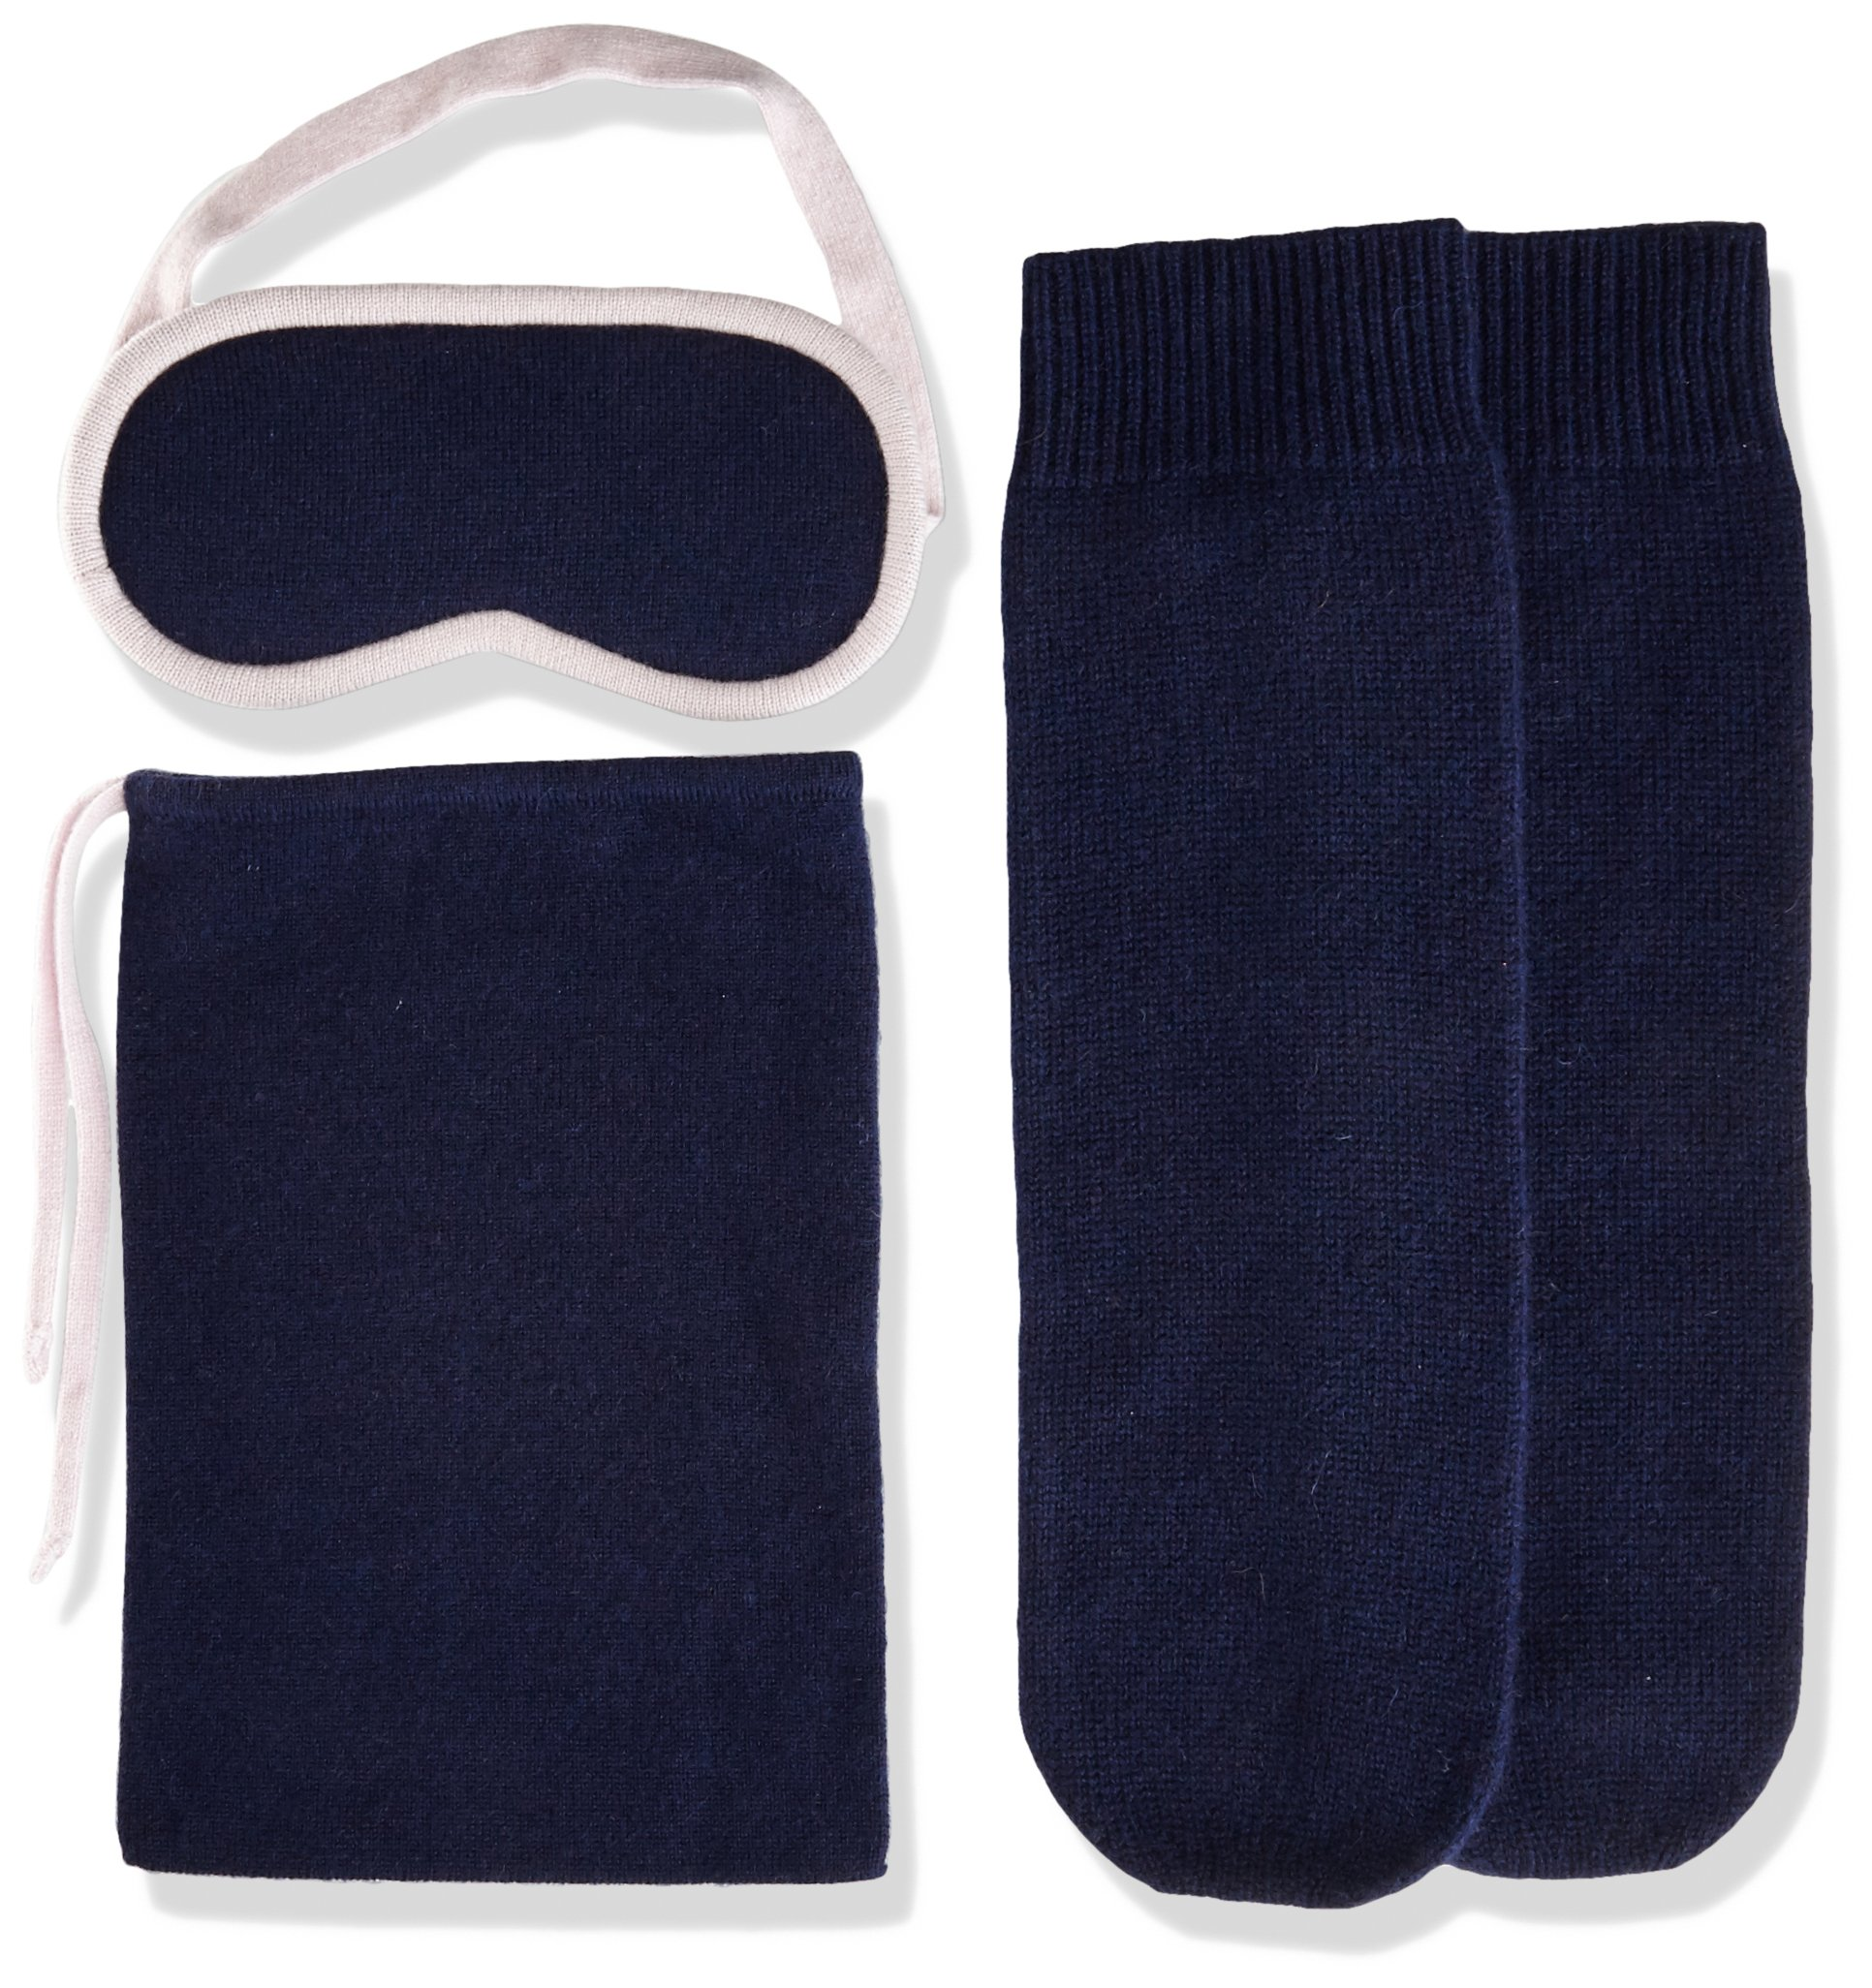 Sofia Cashmere Women's Cashmere Travel Set-Eyemask and Socks, Navy ZY53372 + Orchid ZY60240, One by Sofia Cashmere